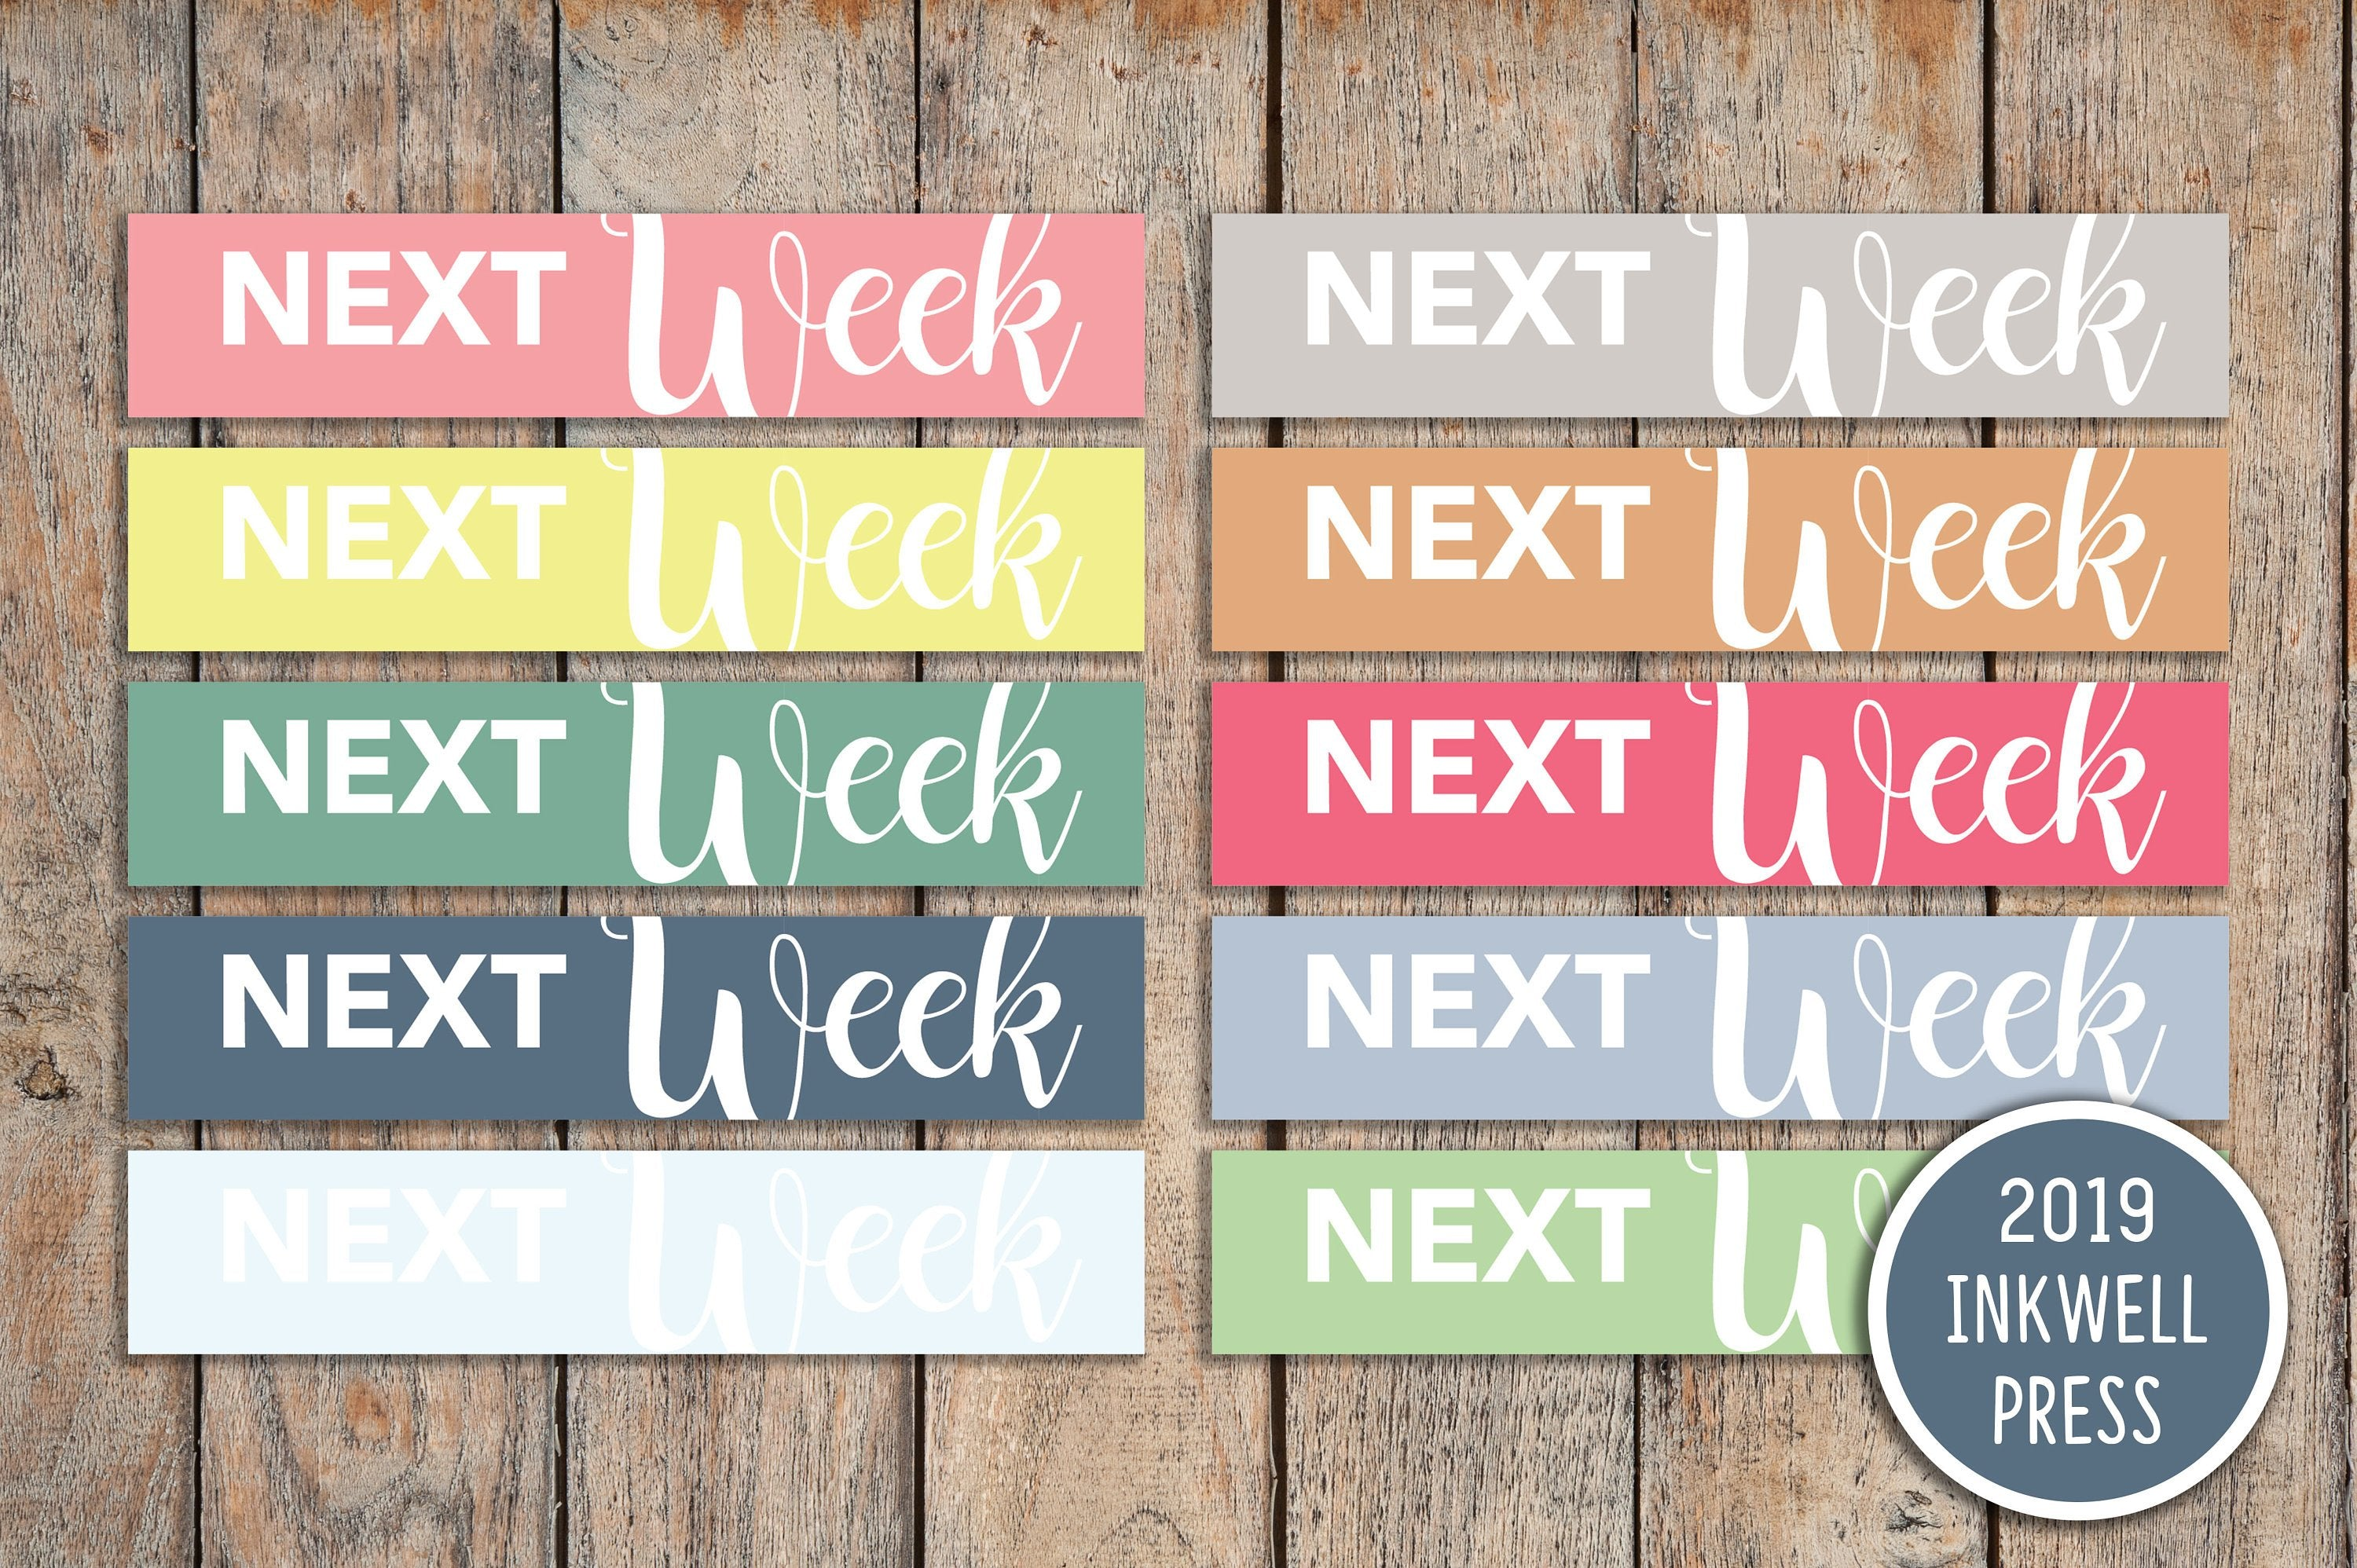 30 Next Week Sampler Headers CLASSIC a5 & Bound Header Stickers for 2019 inkWELL Press Planners IWP-T180